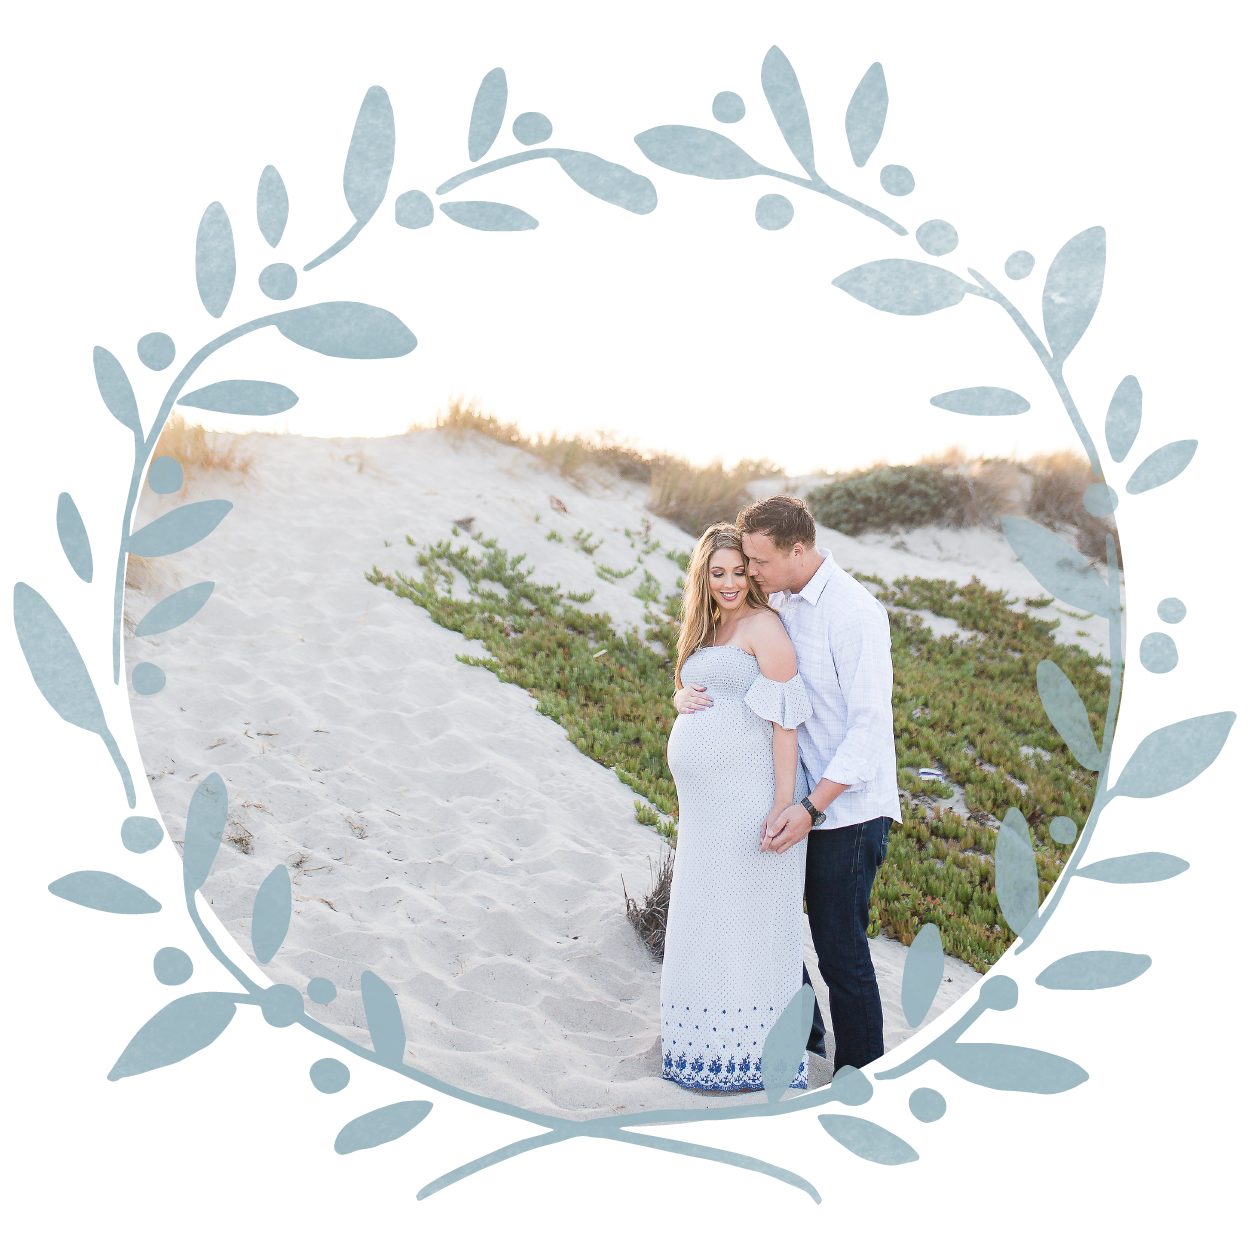 Meghan O'Sullivan Photography fine art wedding and portrait photographer serving Santa Clarita, Los Angeles, Ventura County and beyond.